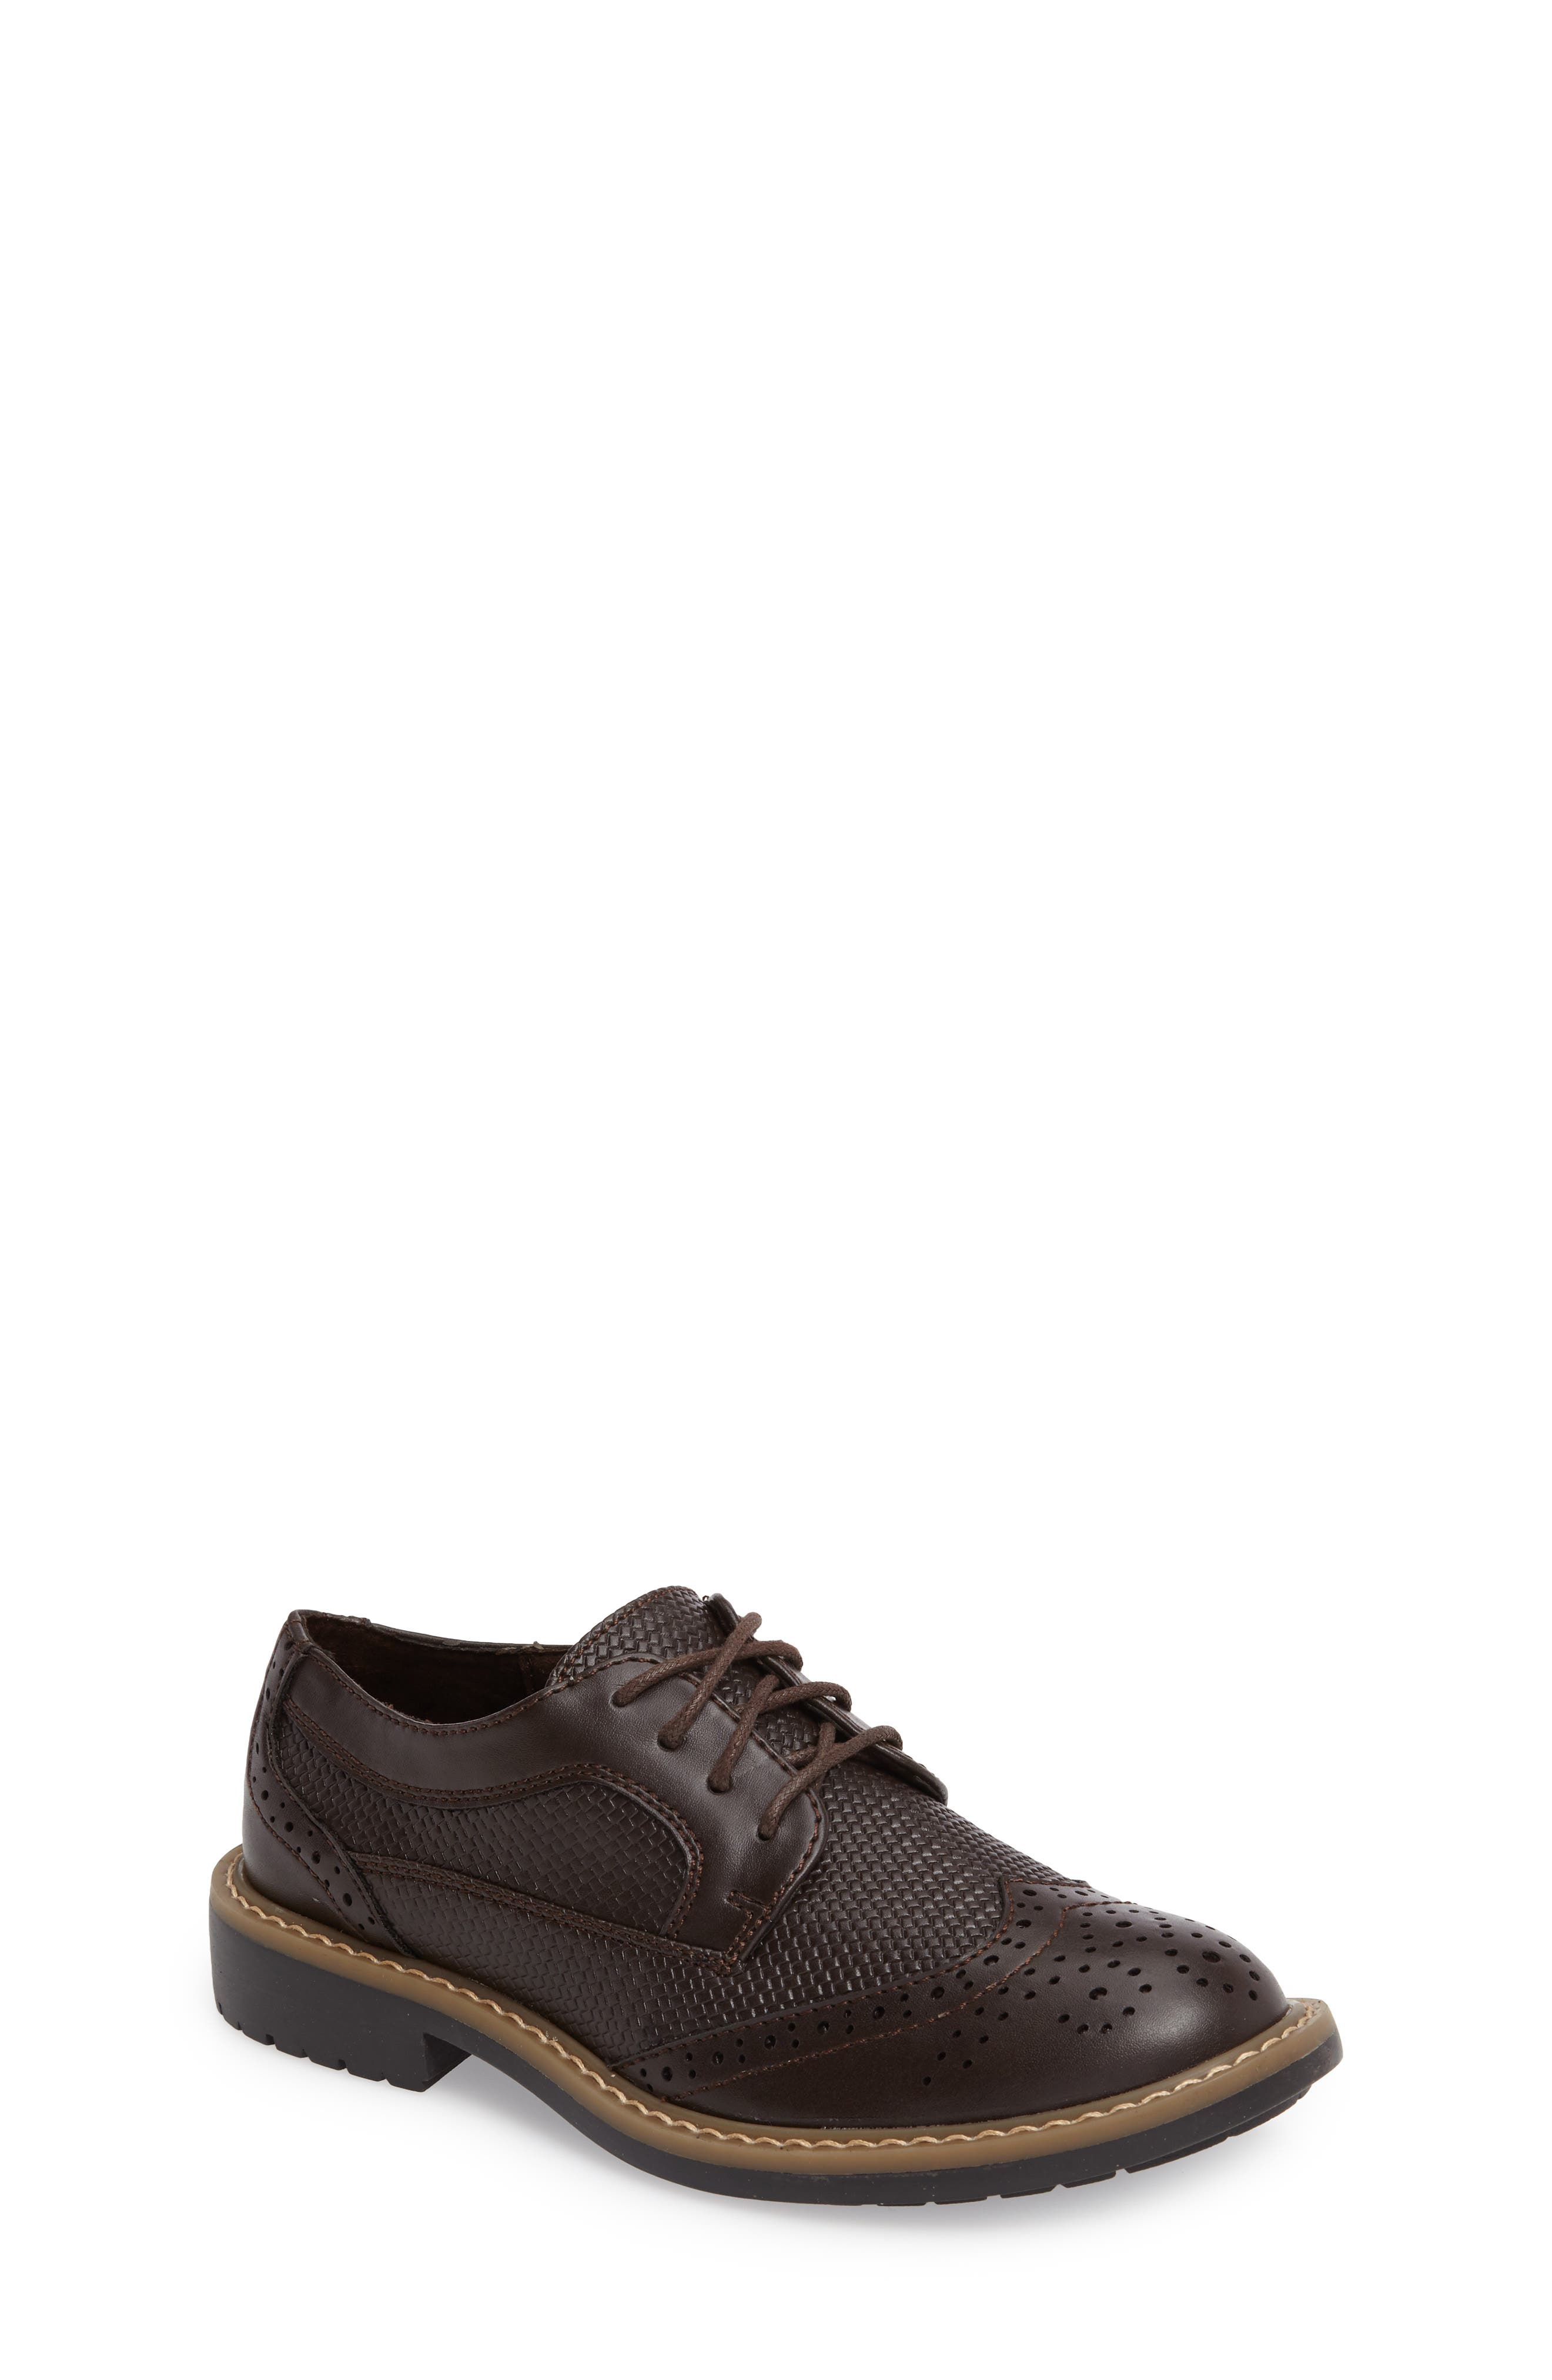 Reaction Kenneth Cole 'Take Fair' Wingtip Oxford (Little Kid & Big Kid)